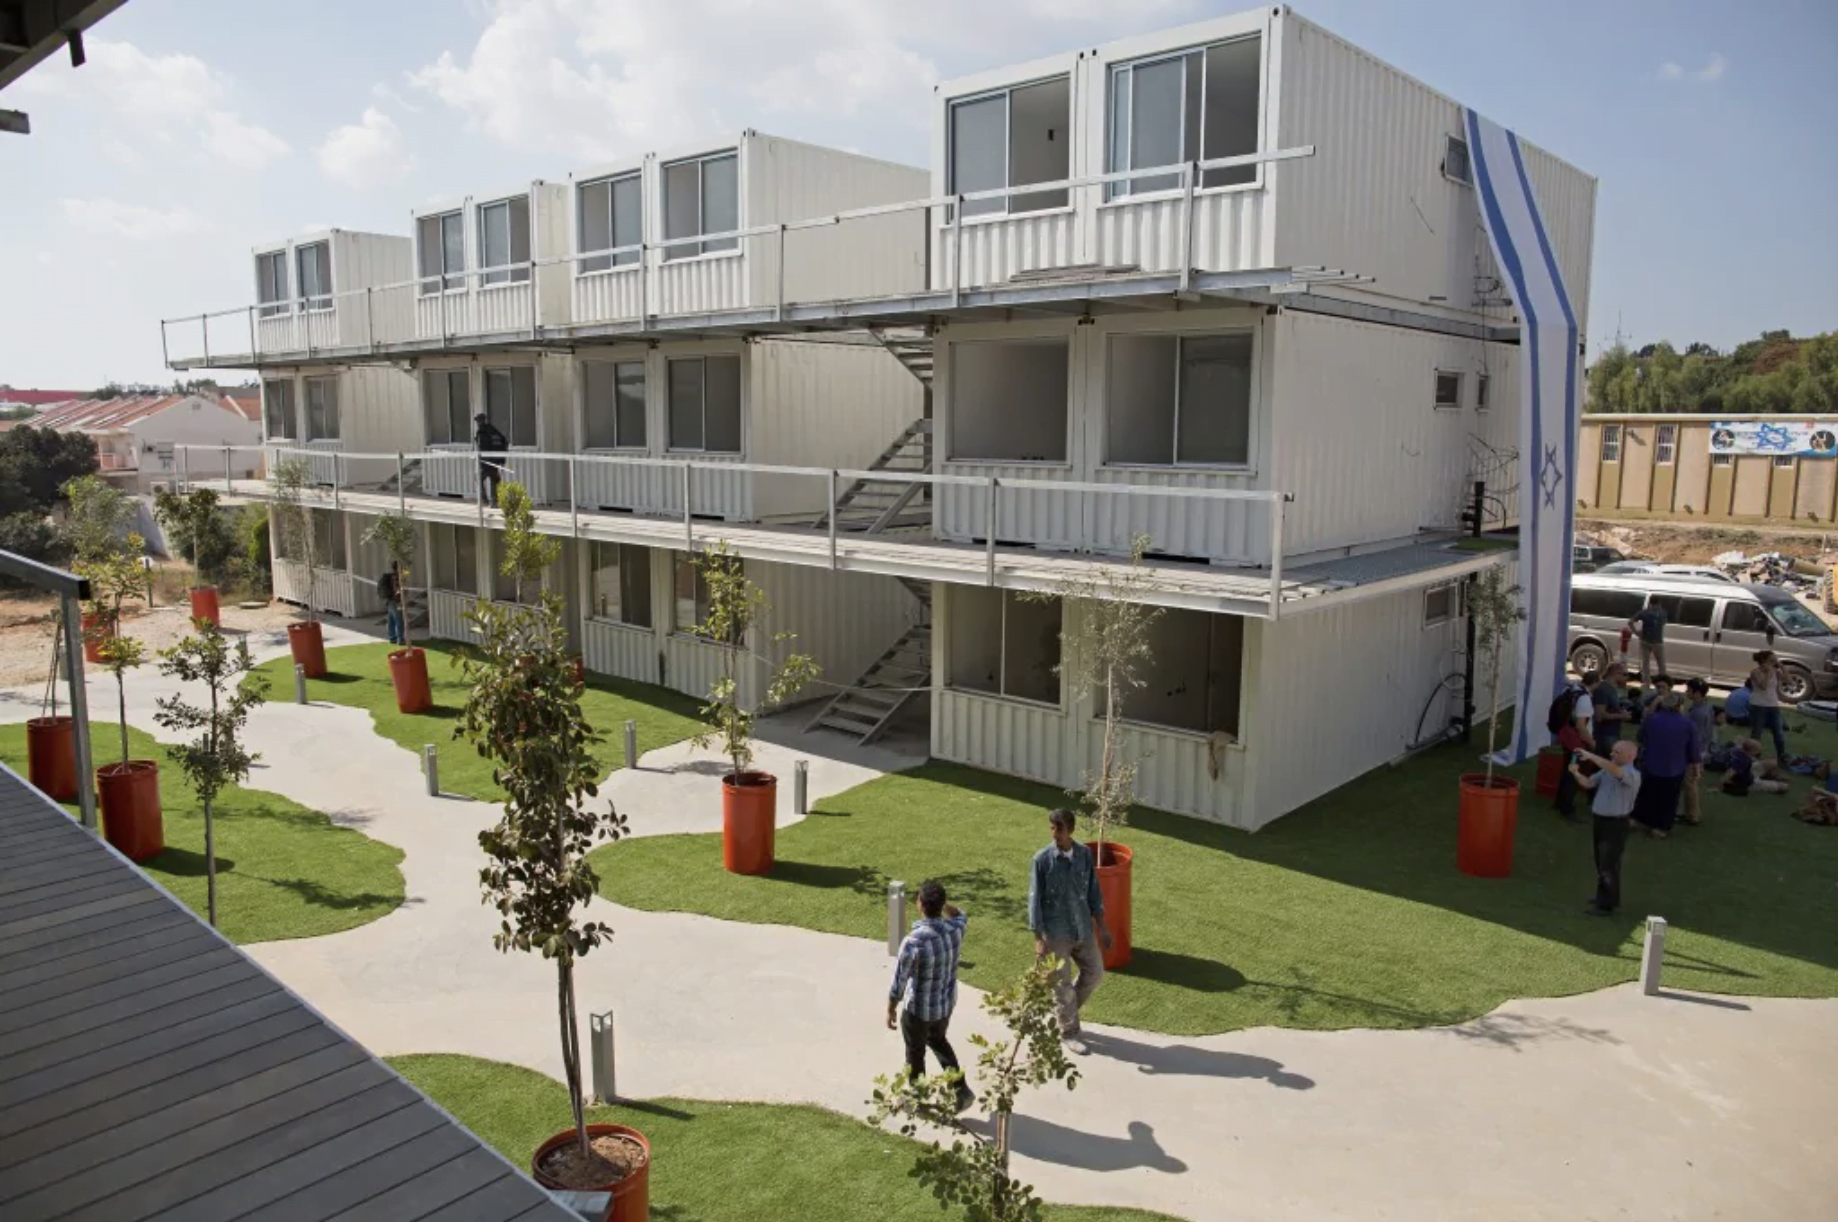 affordable housing student design - HD1838×1222